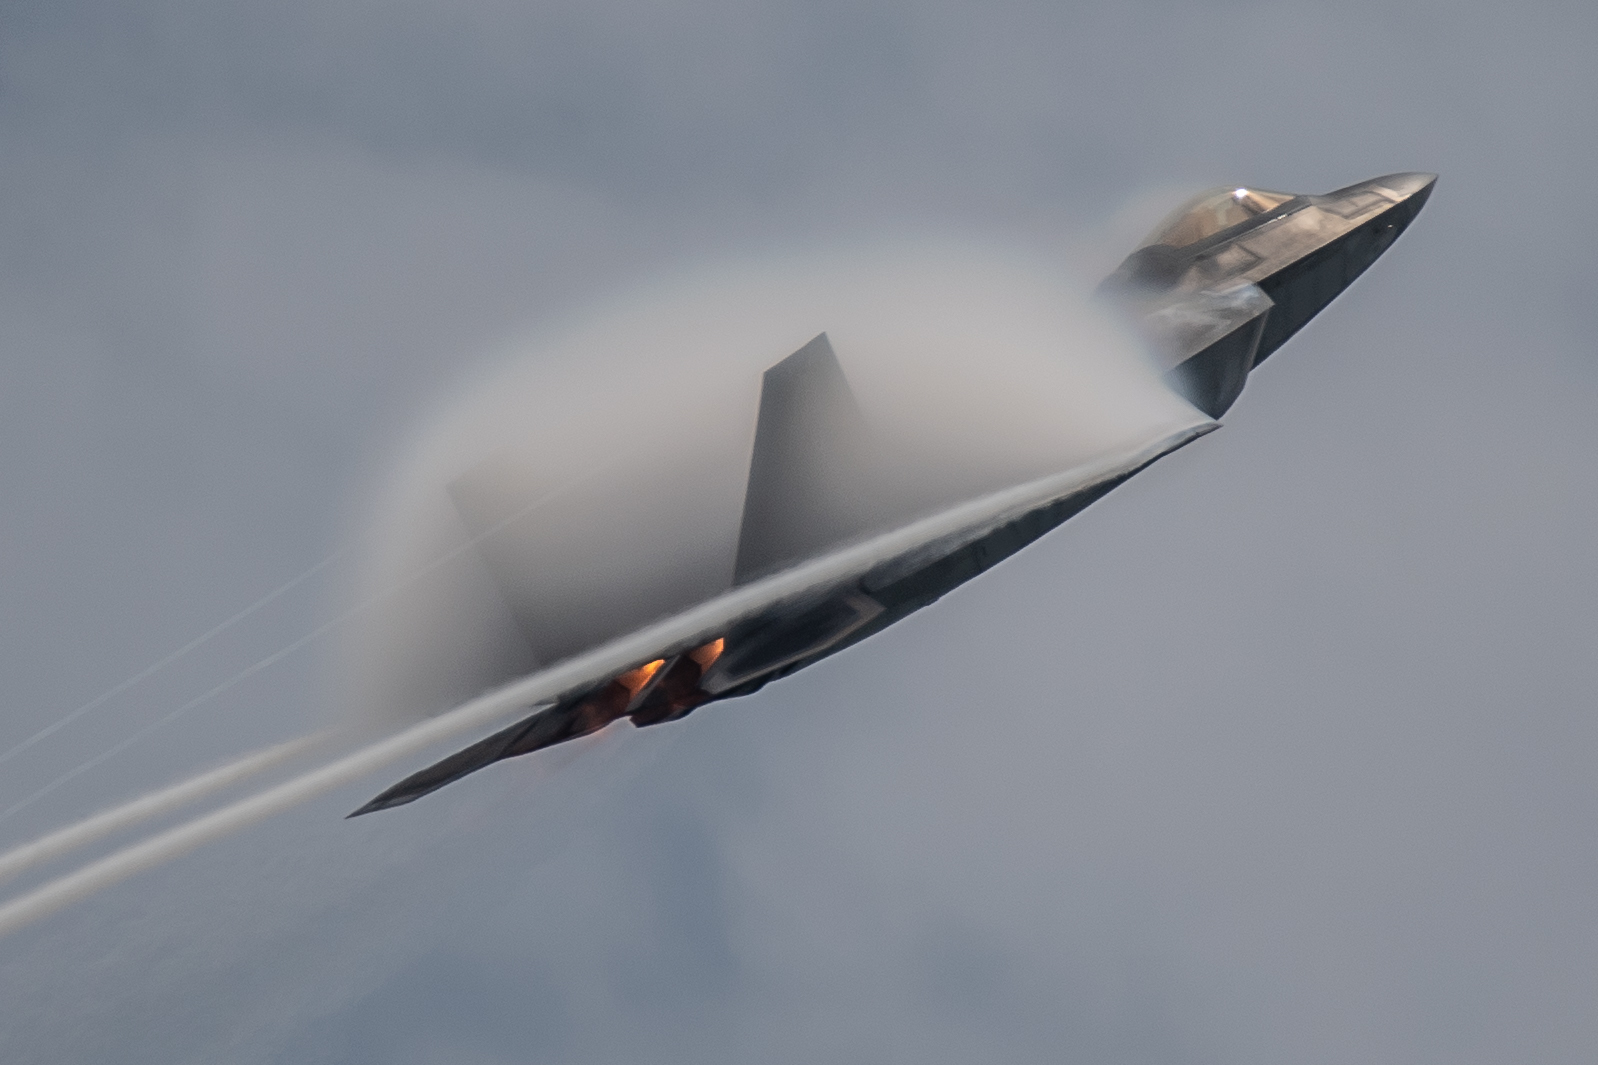 Maj. Josh Gunderson, F-22 Demonstration Team pilot, performs during an aerial demonstration at the Singapore Airshow 2020 near the Changi Exhibition Center, Feb. 11, 2020. (2nd Lt. Sam Eckholm/Air Force)